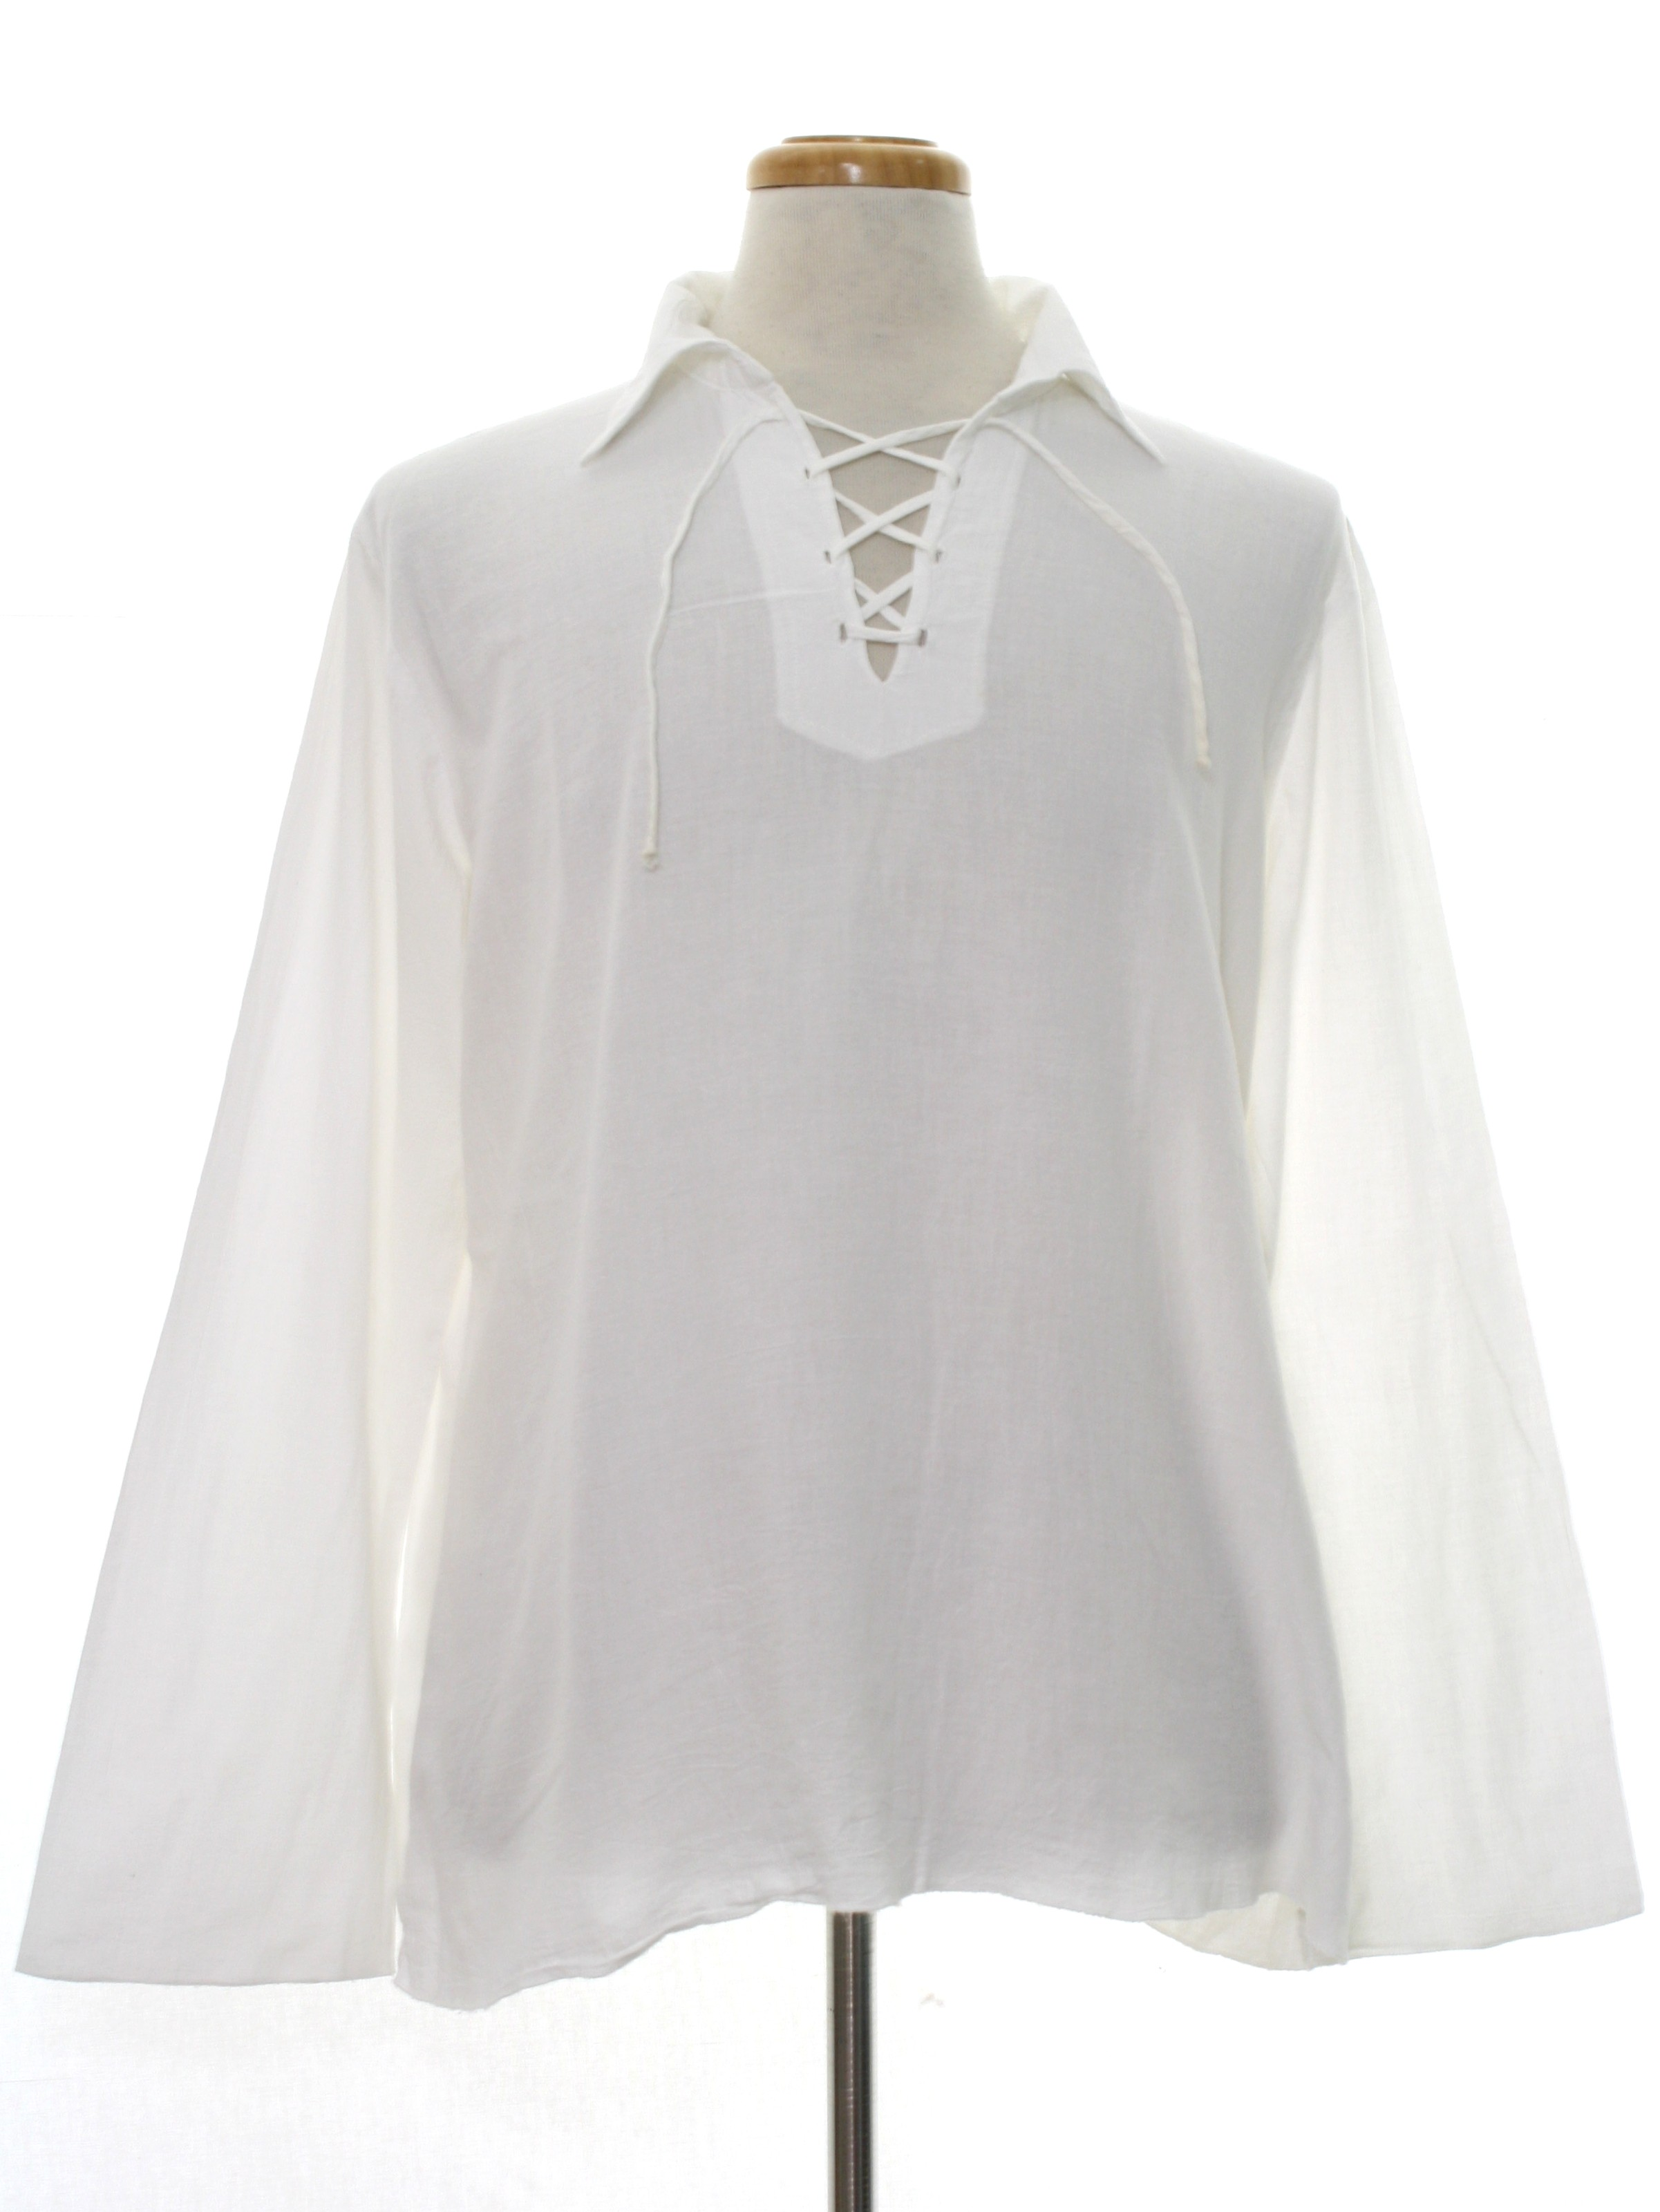 Womens White Cotton Long Sleeve Shirt